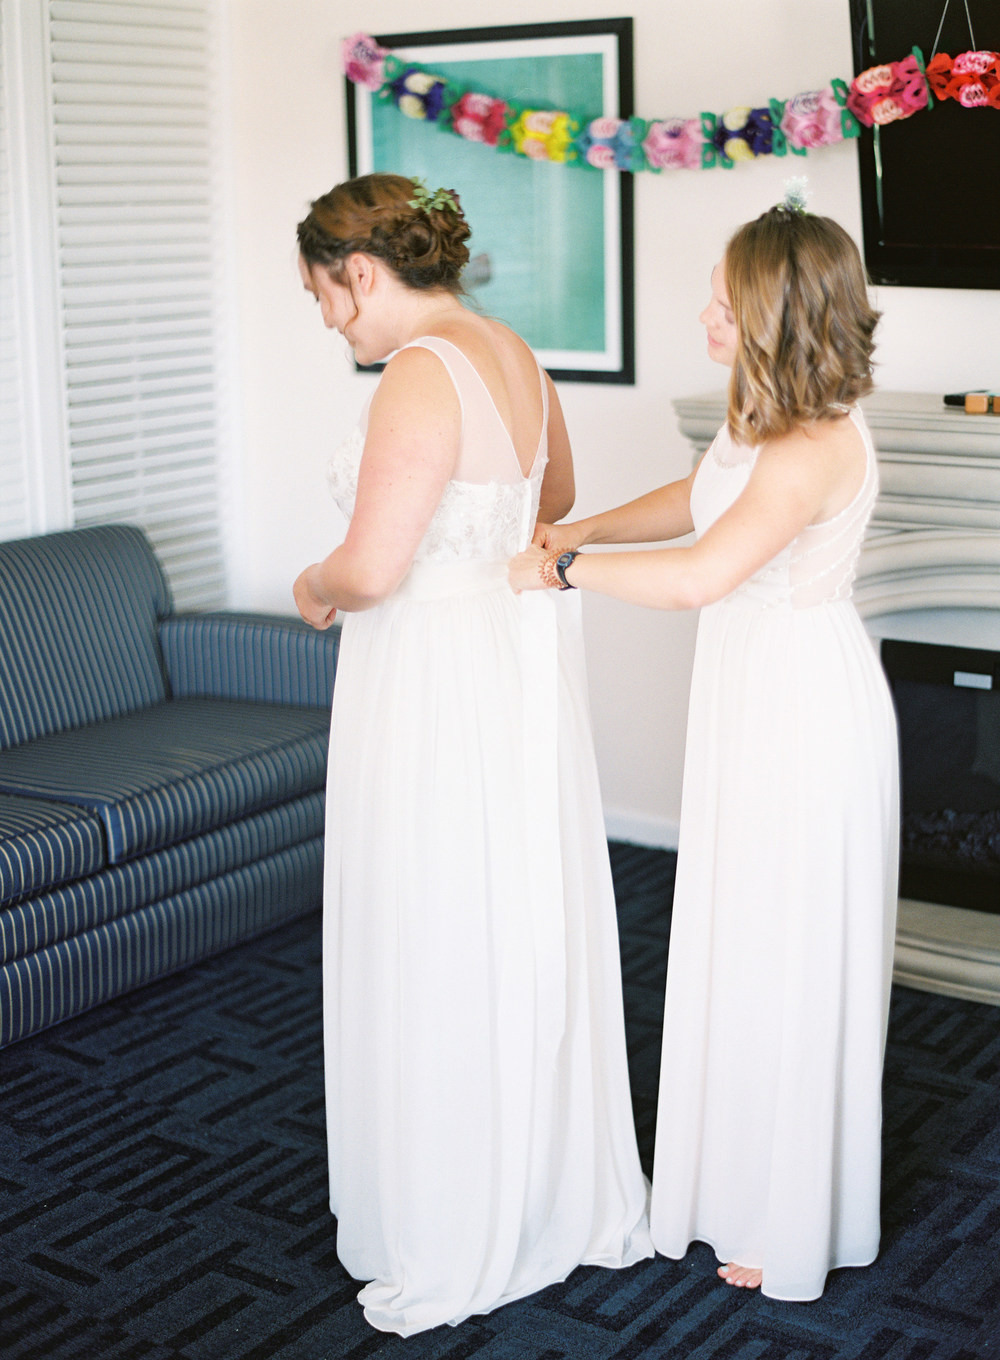 boho-inspired-wedding-at-piedmont-community-center-29.jpg